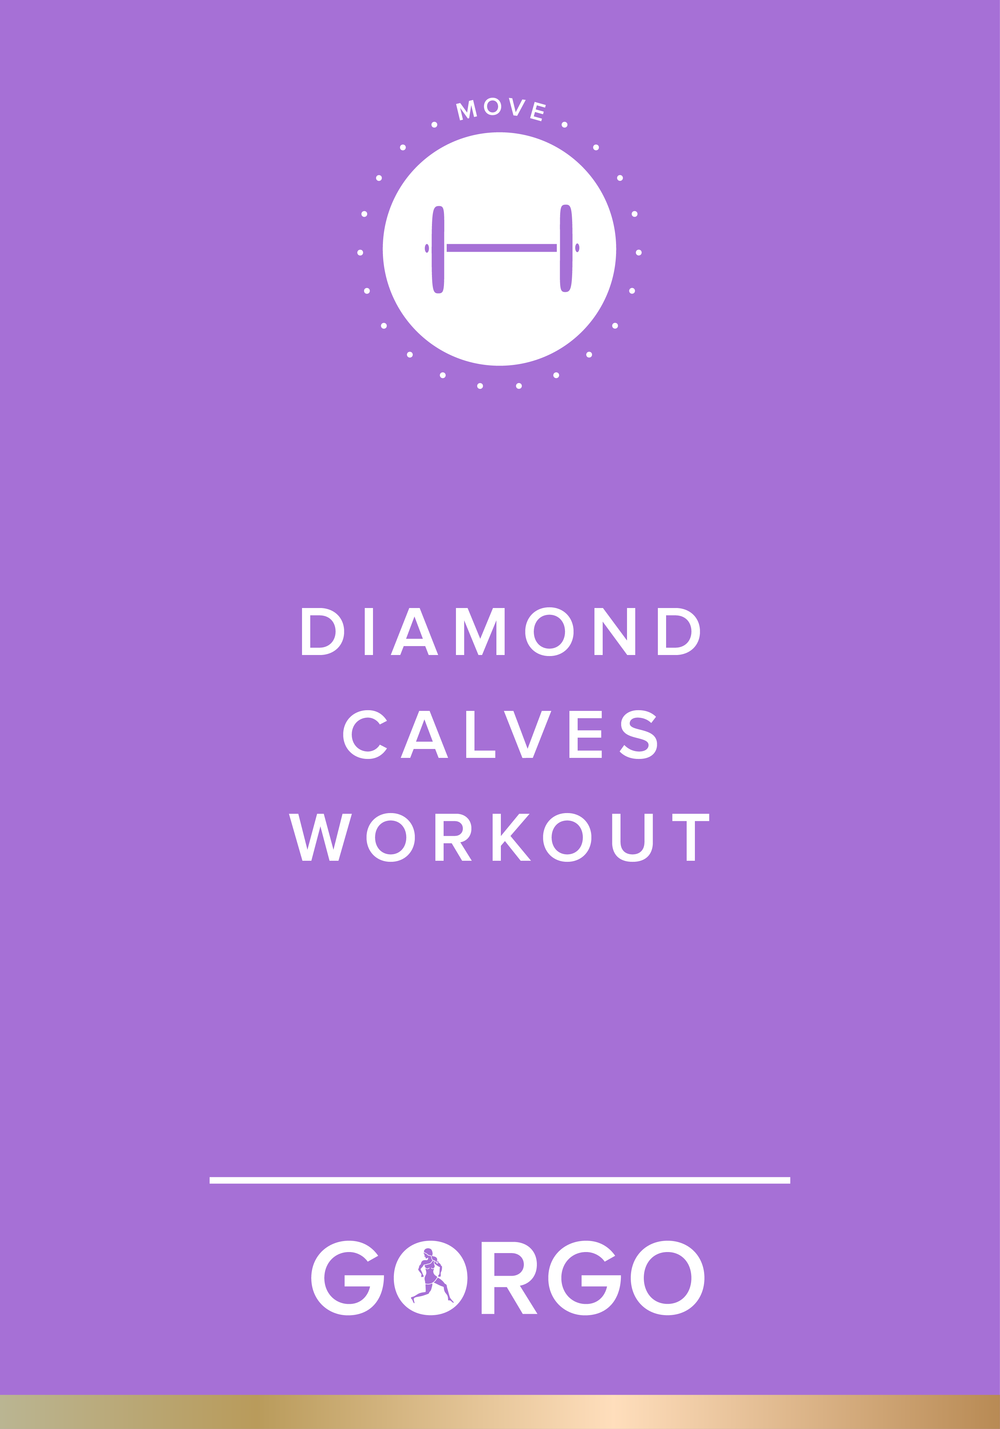 Diamond Calves Workout #gorgogirl #move